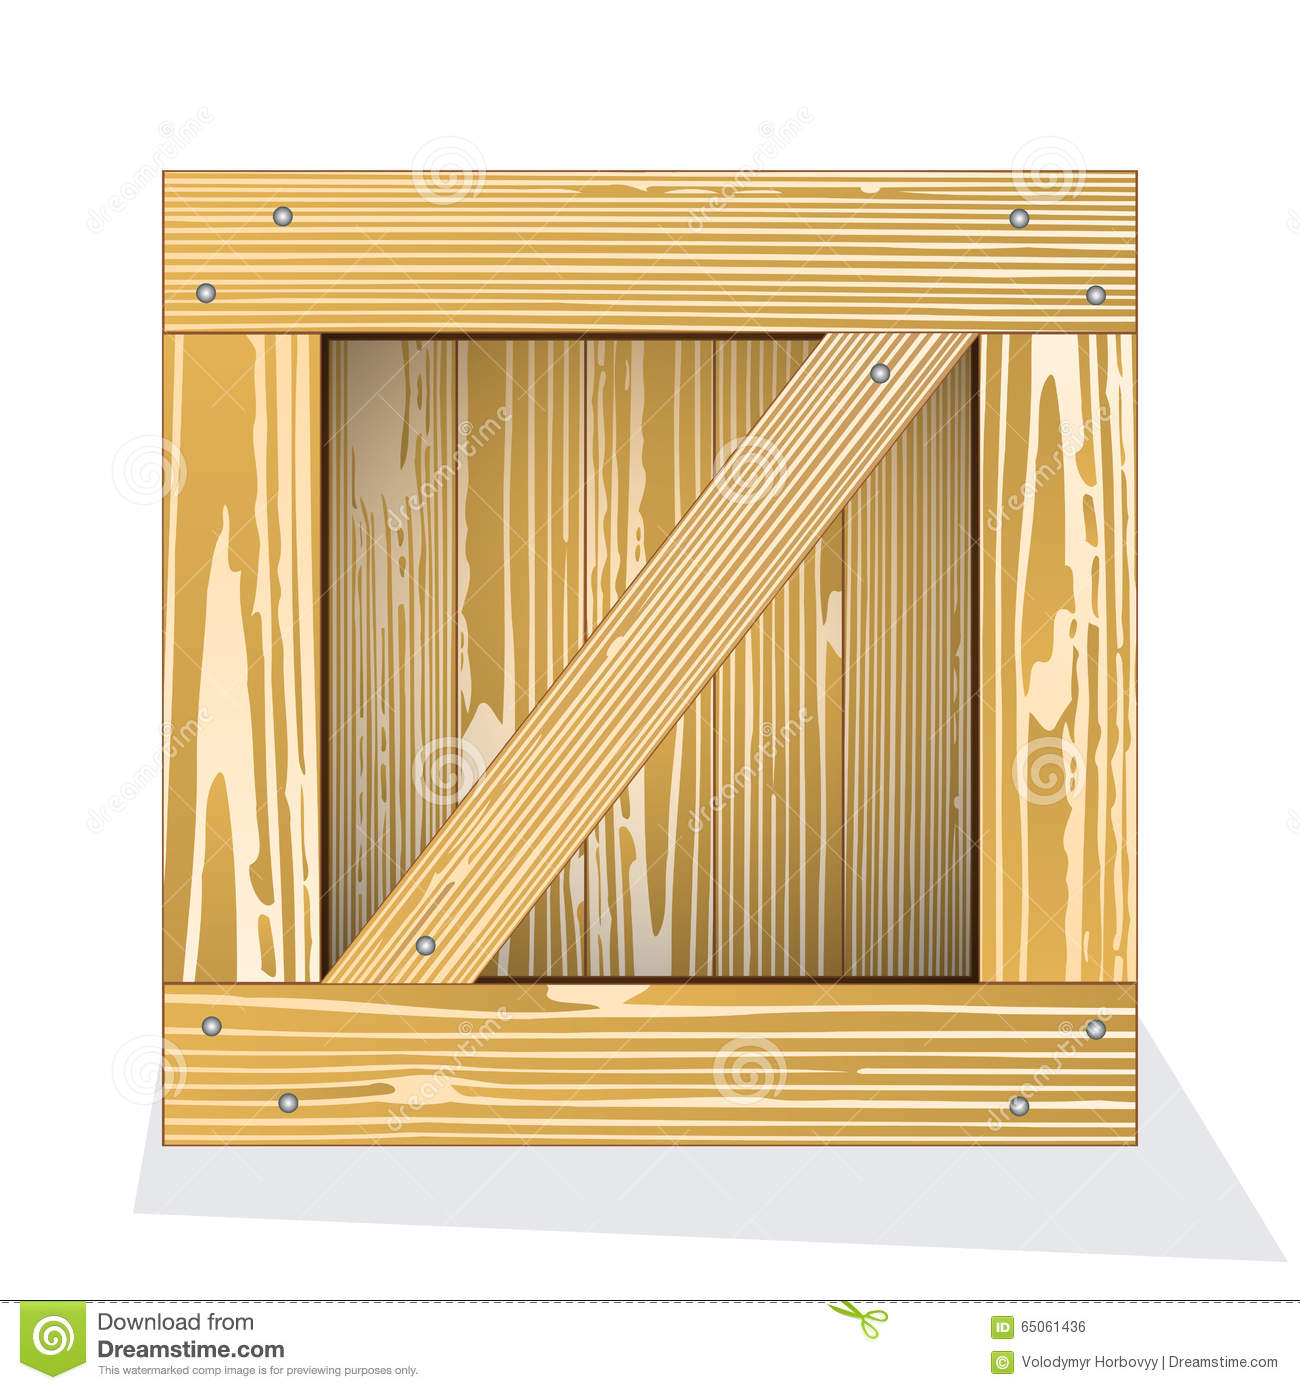 Wooden box icon stock vector. Image of isolated, pine ...